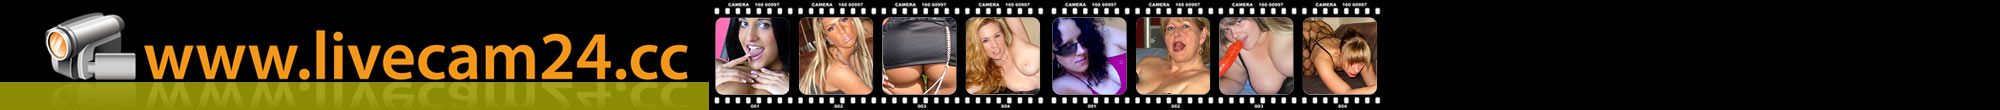 Cinzia, 47 Jahre, BH: 80 C - brüste 75d -  - Video Web Cams Live Sex Chat von heissen Girls